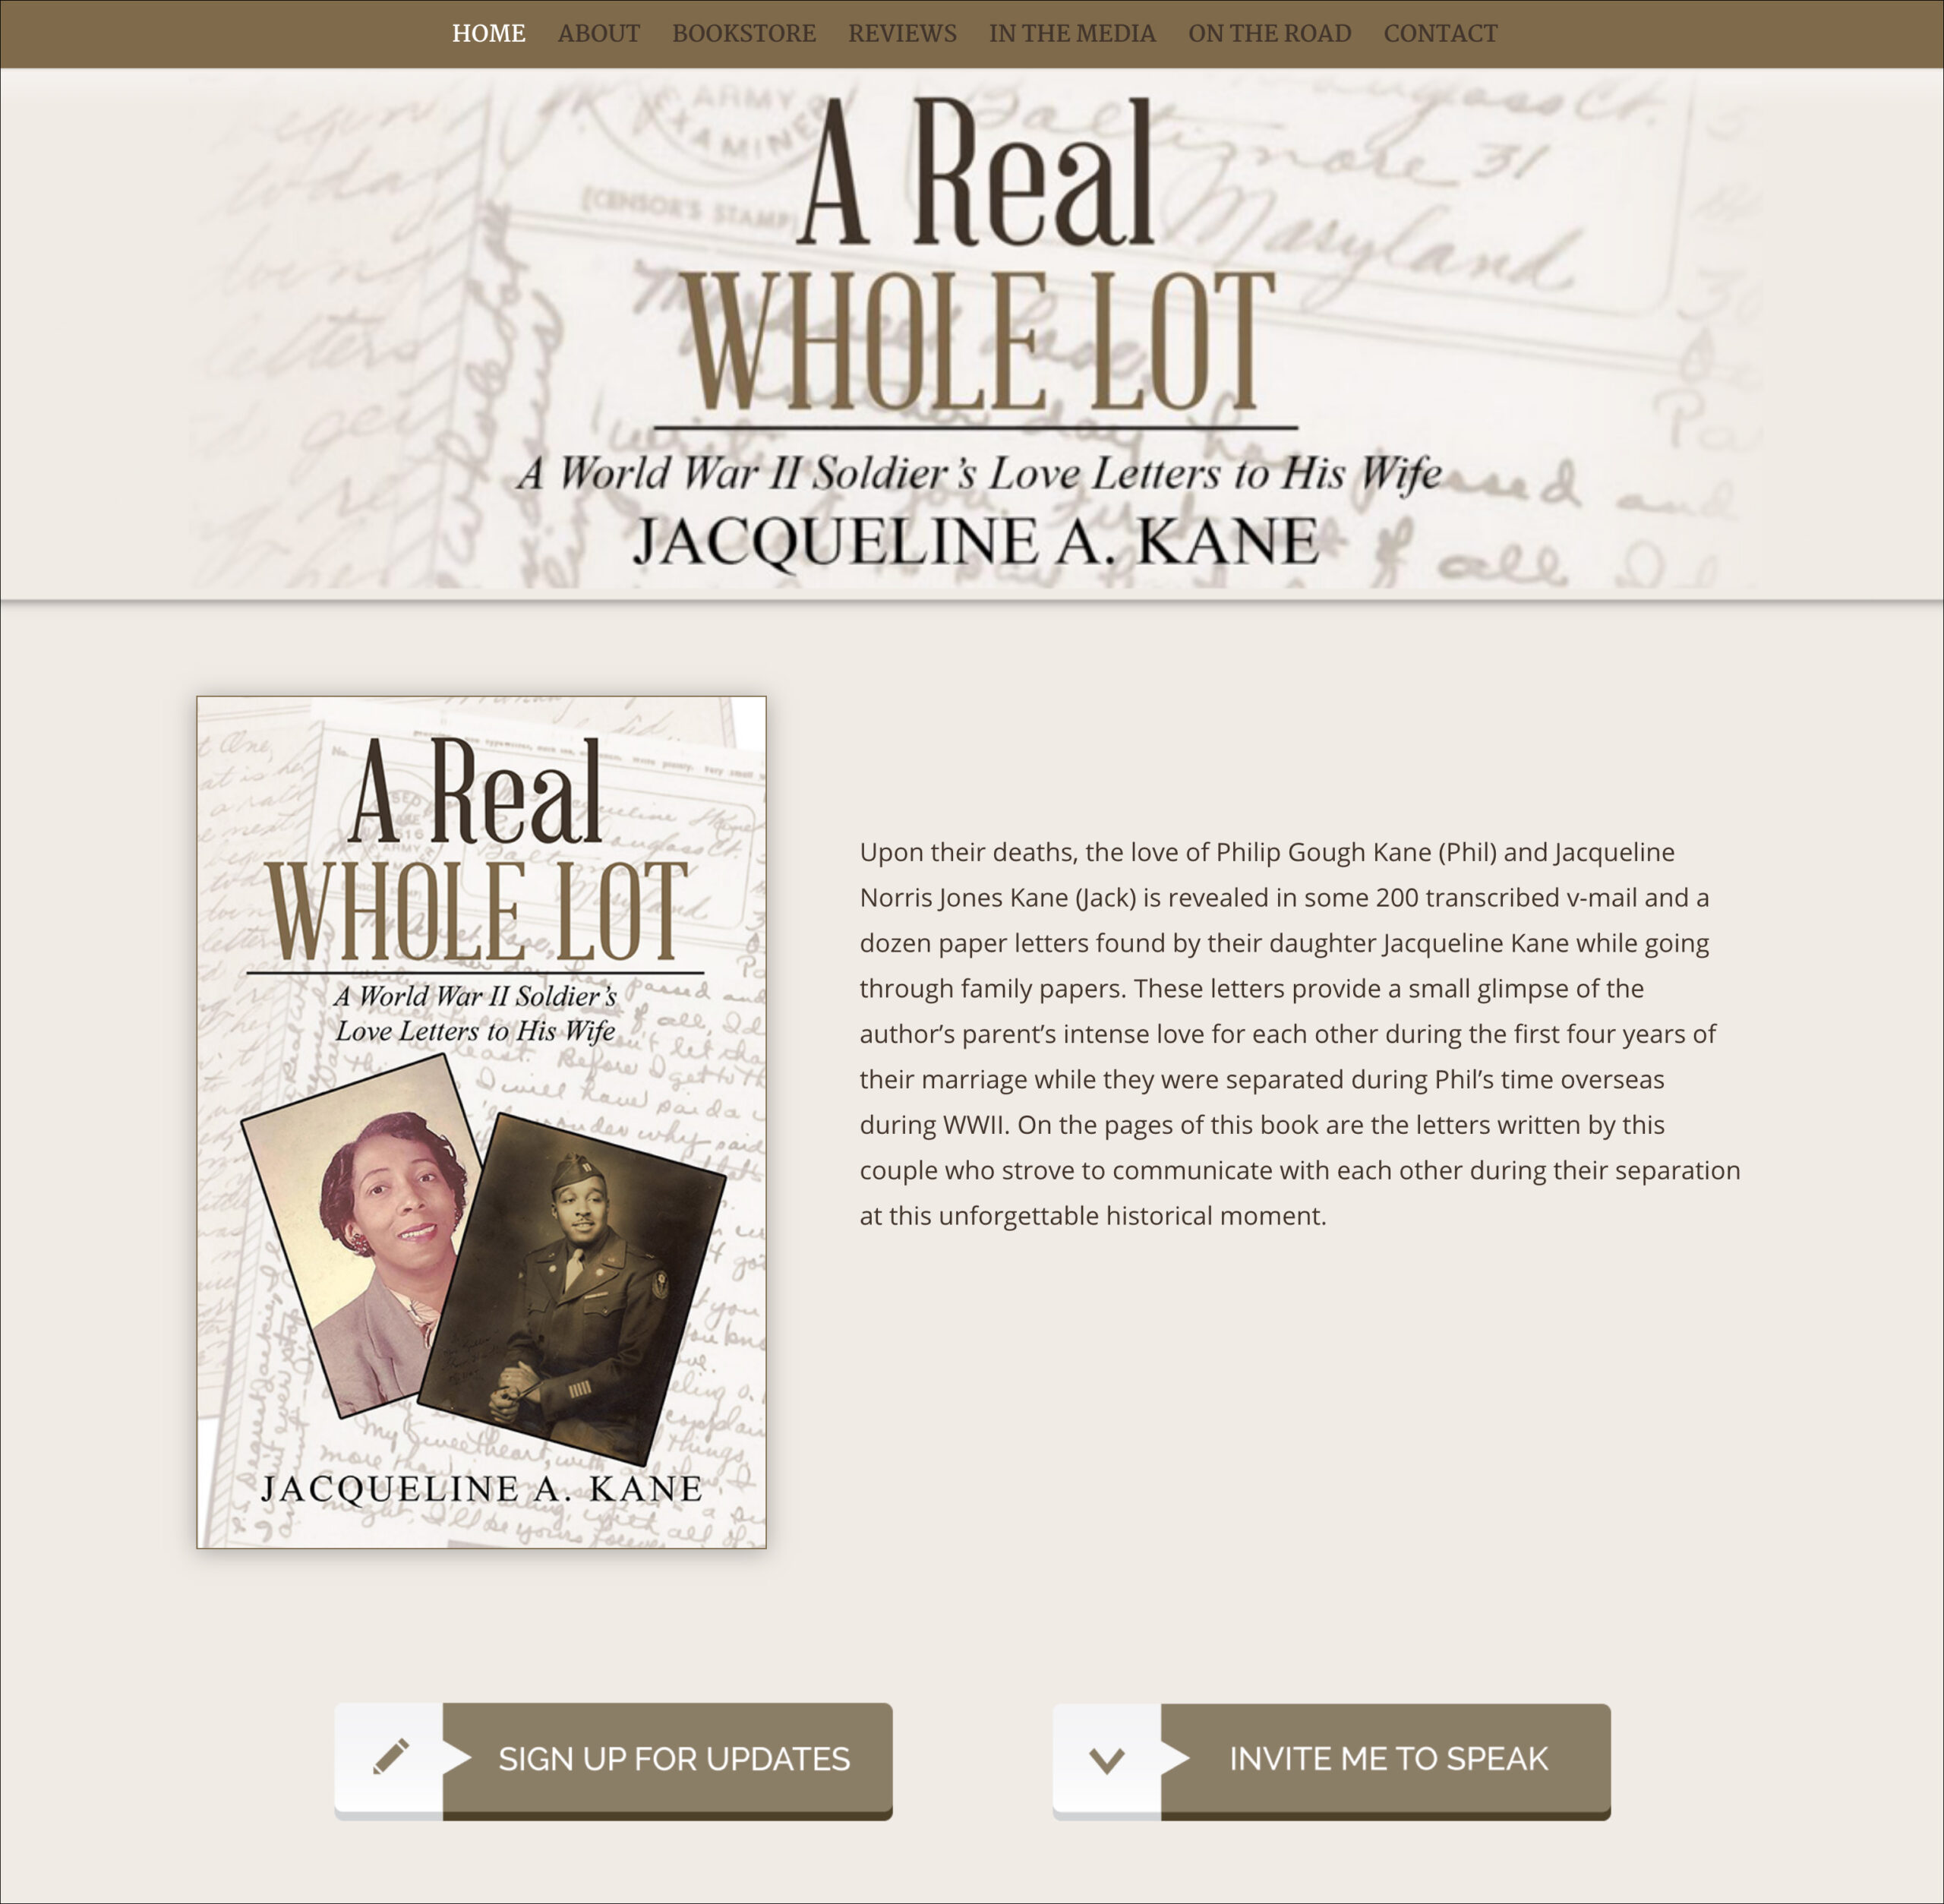 A Real Whole Lot Website